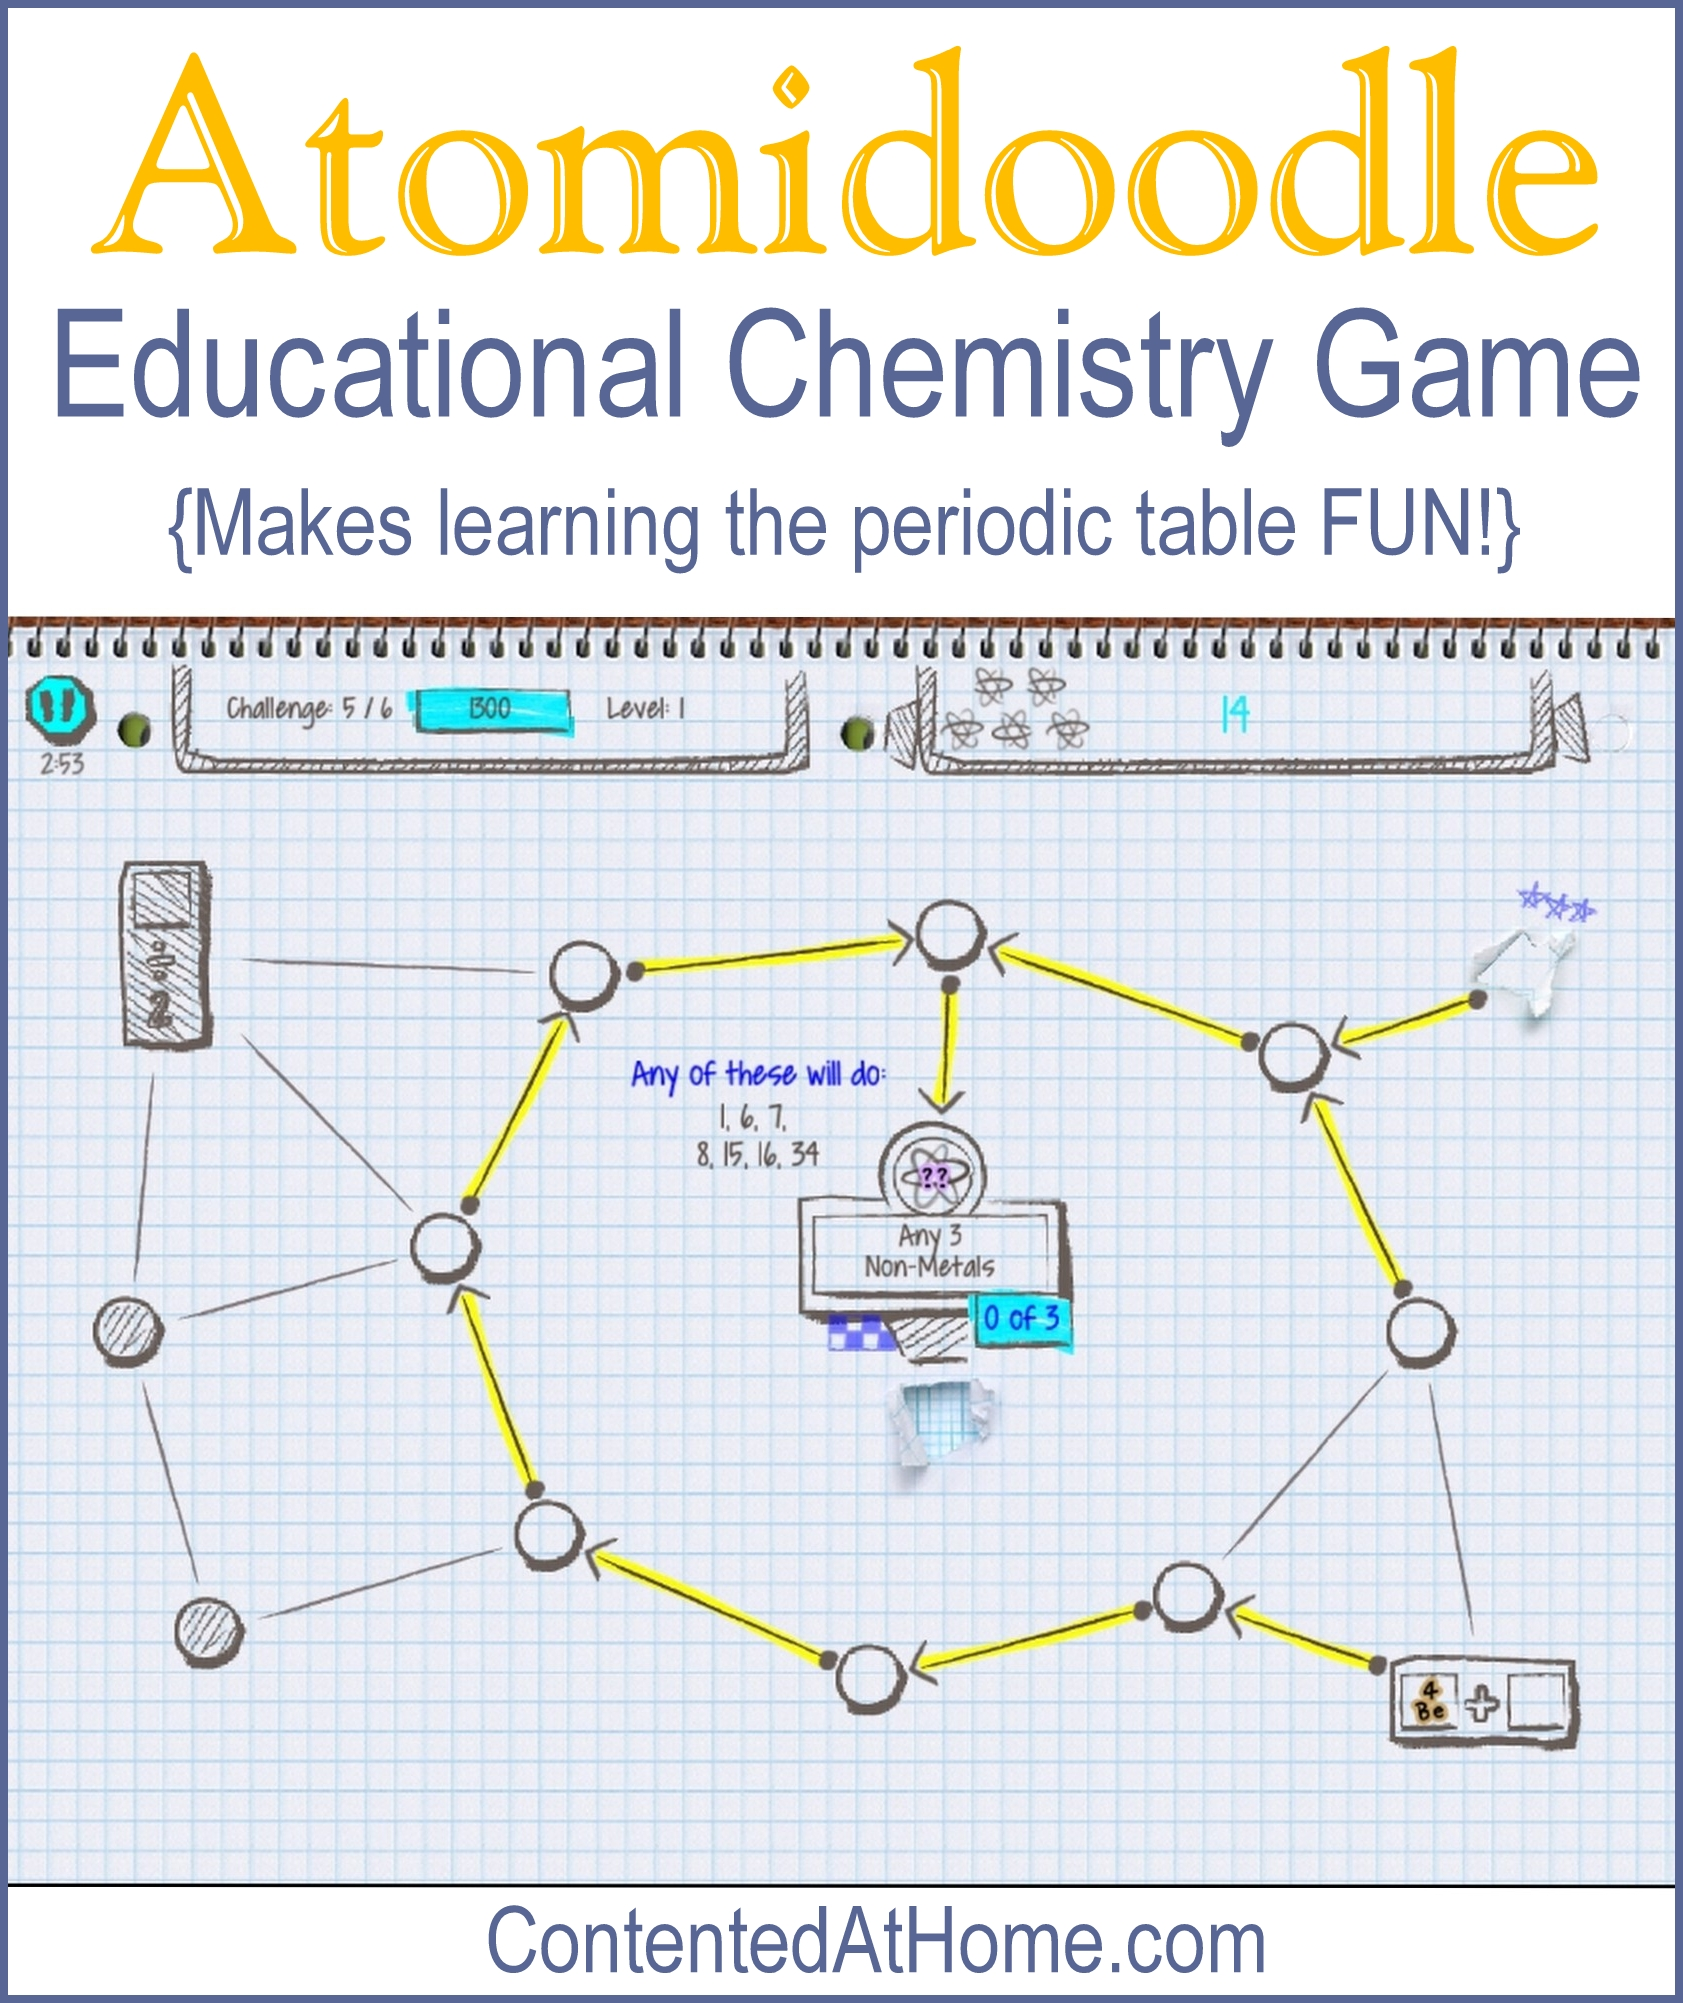 atomidoodle educational chemistry game contented at home. Black Bedroom Furniture Sets. Home Design Ideas